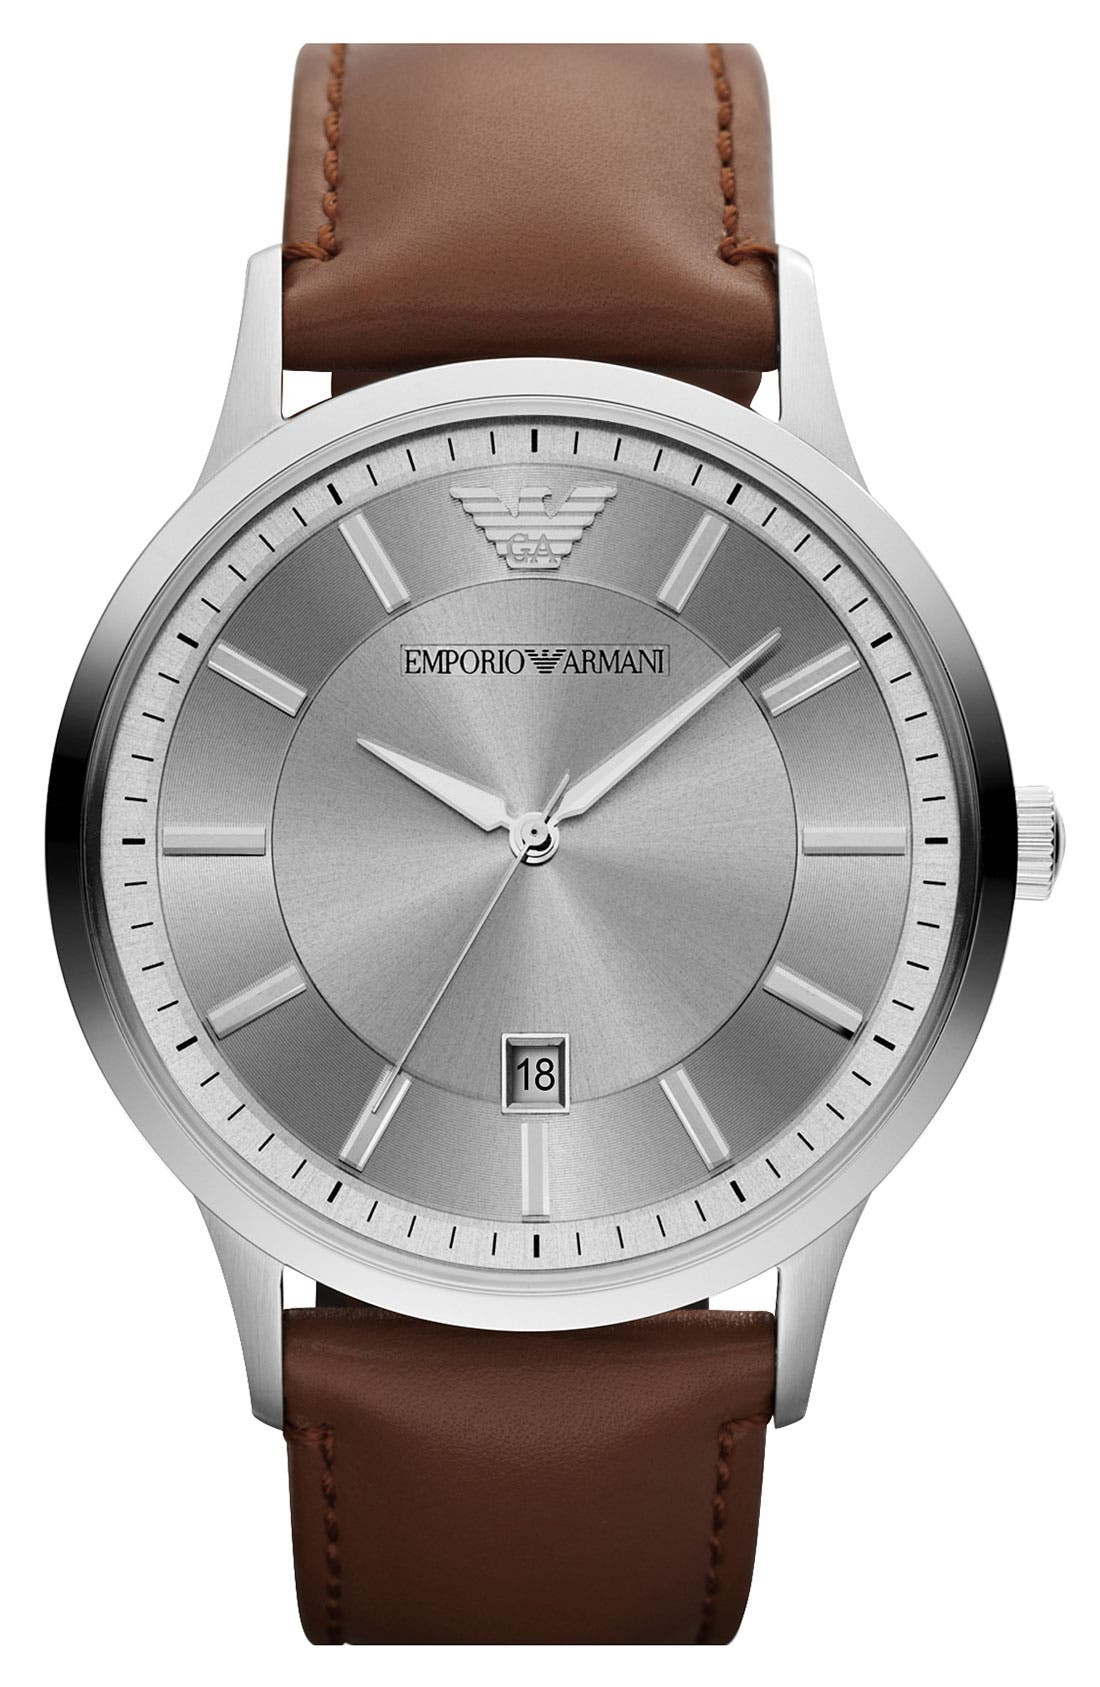 EMPORIO ARMANI, Round Leather Strap Watch, 43mm, Main thumbnail 1, color, 200